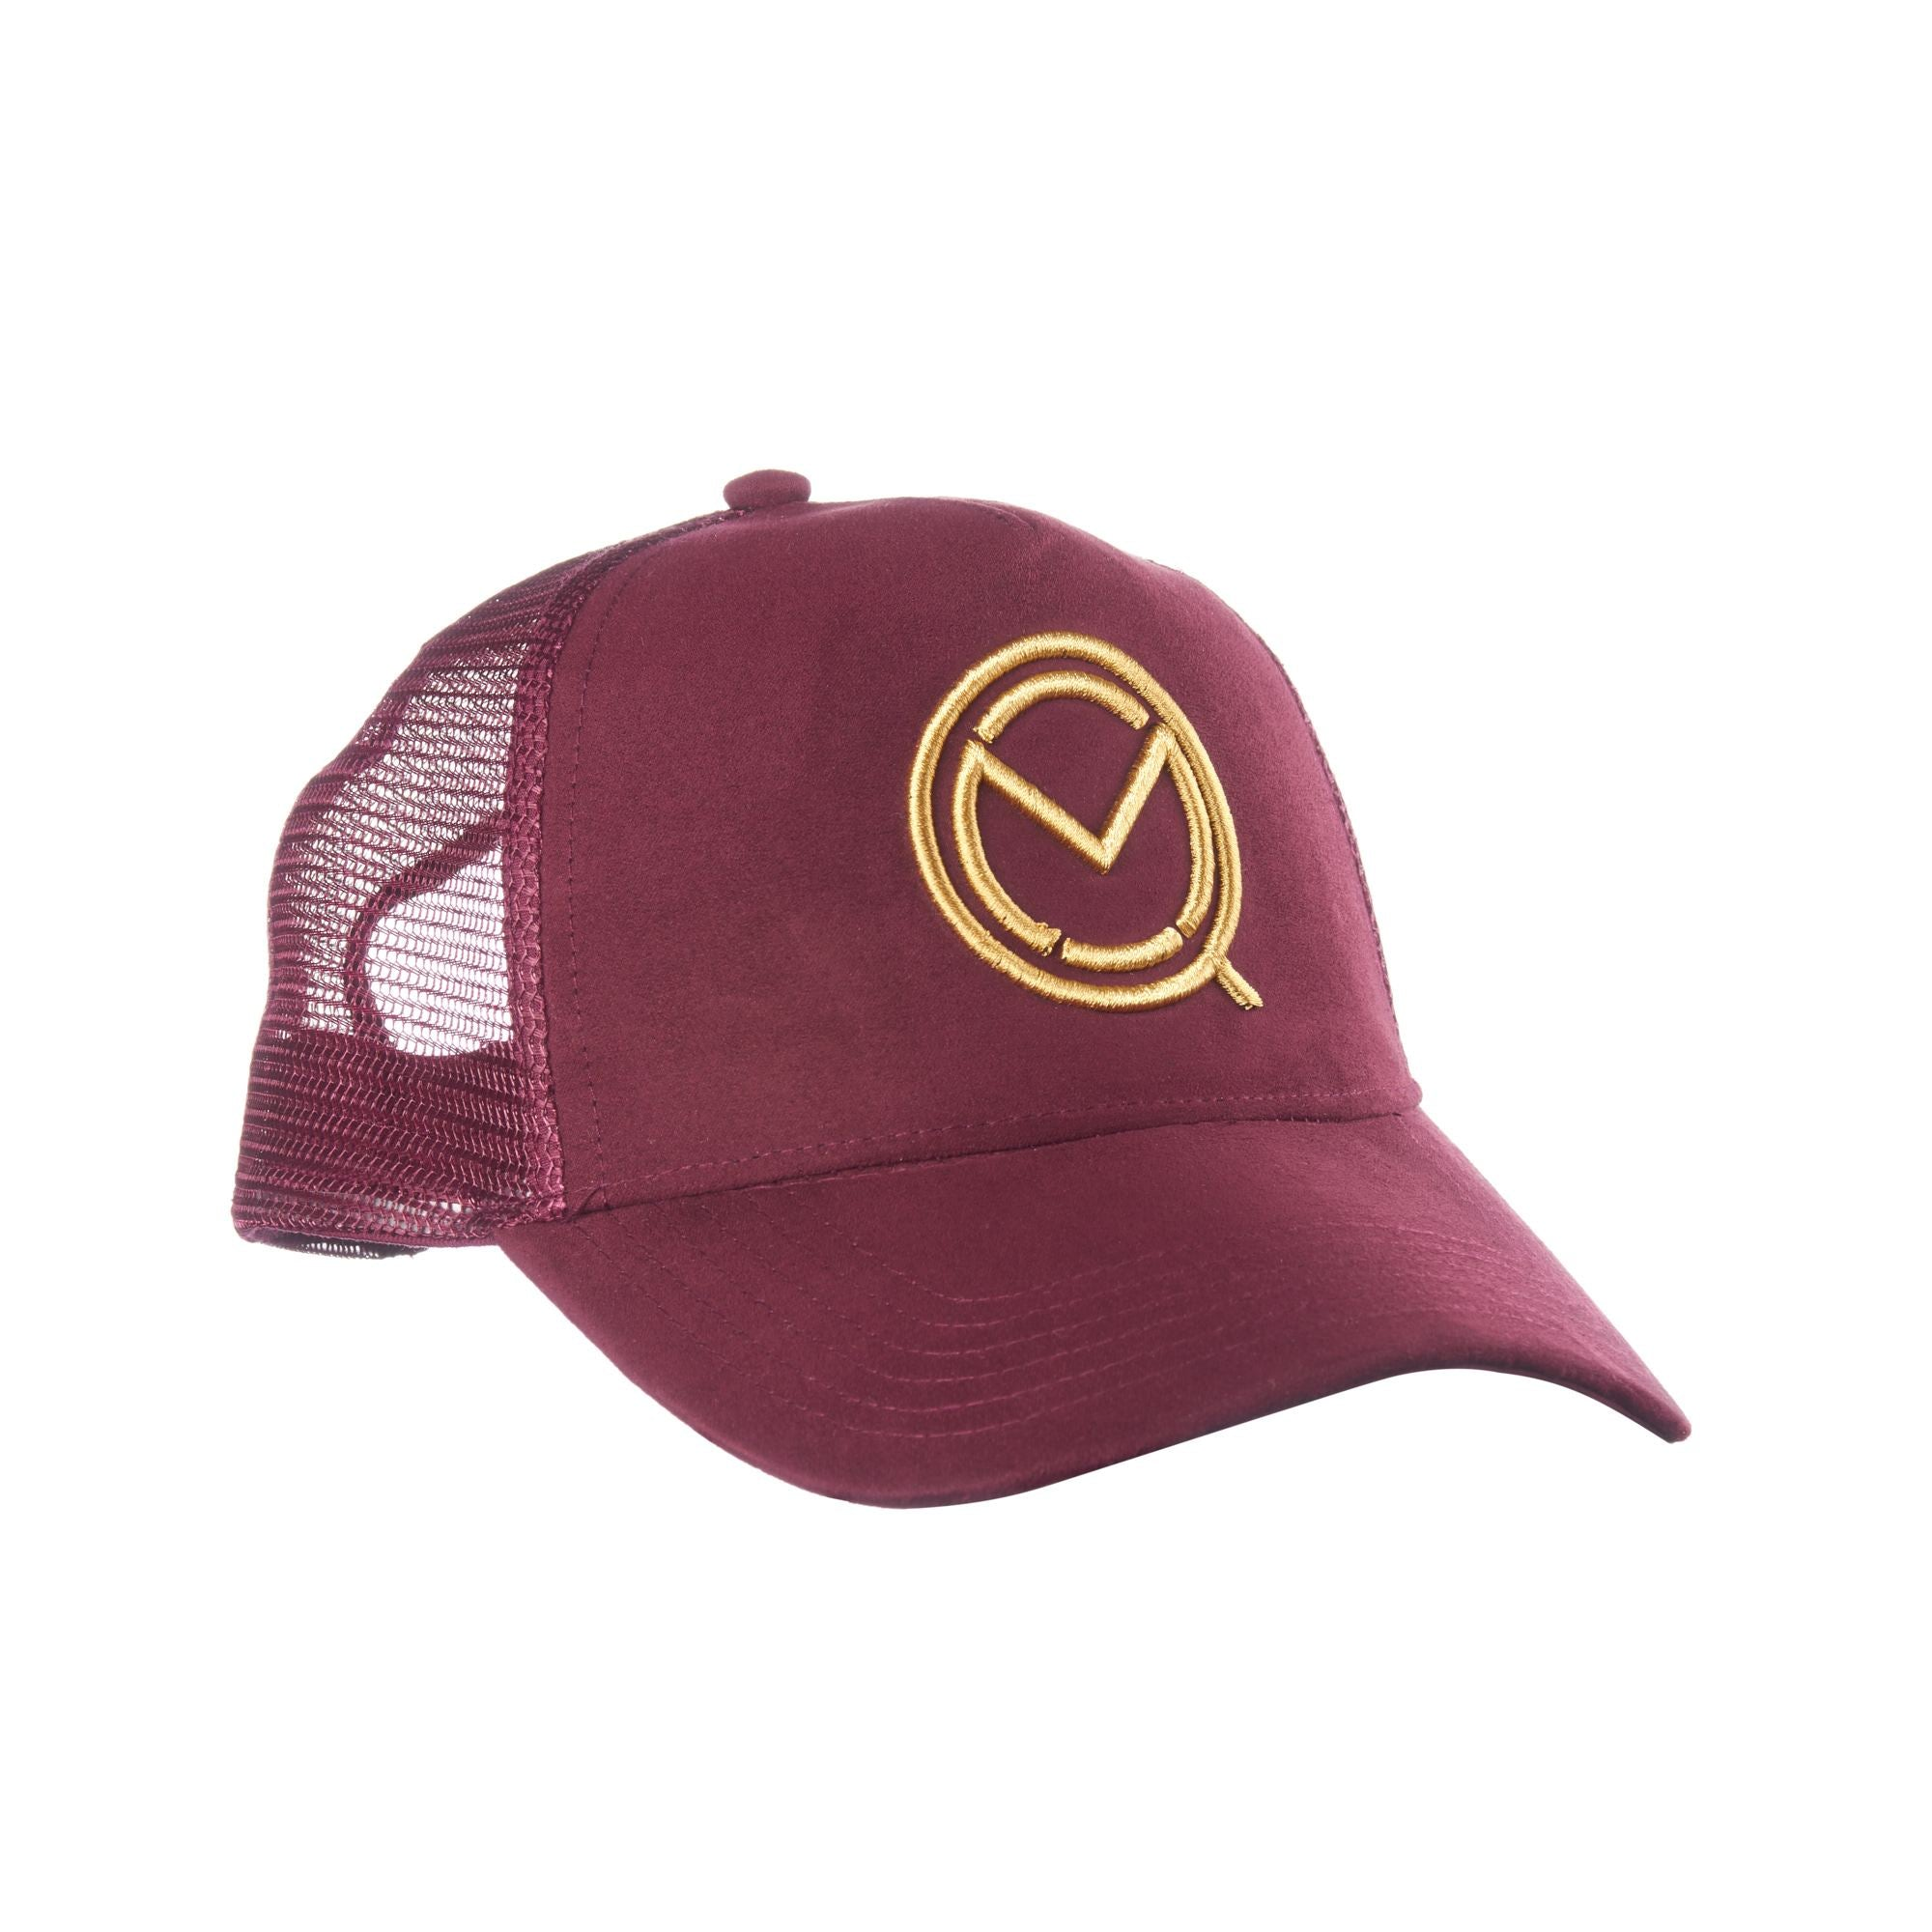 Burgundy Suede Style Cap - MOQ boxing